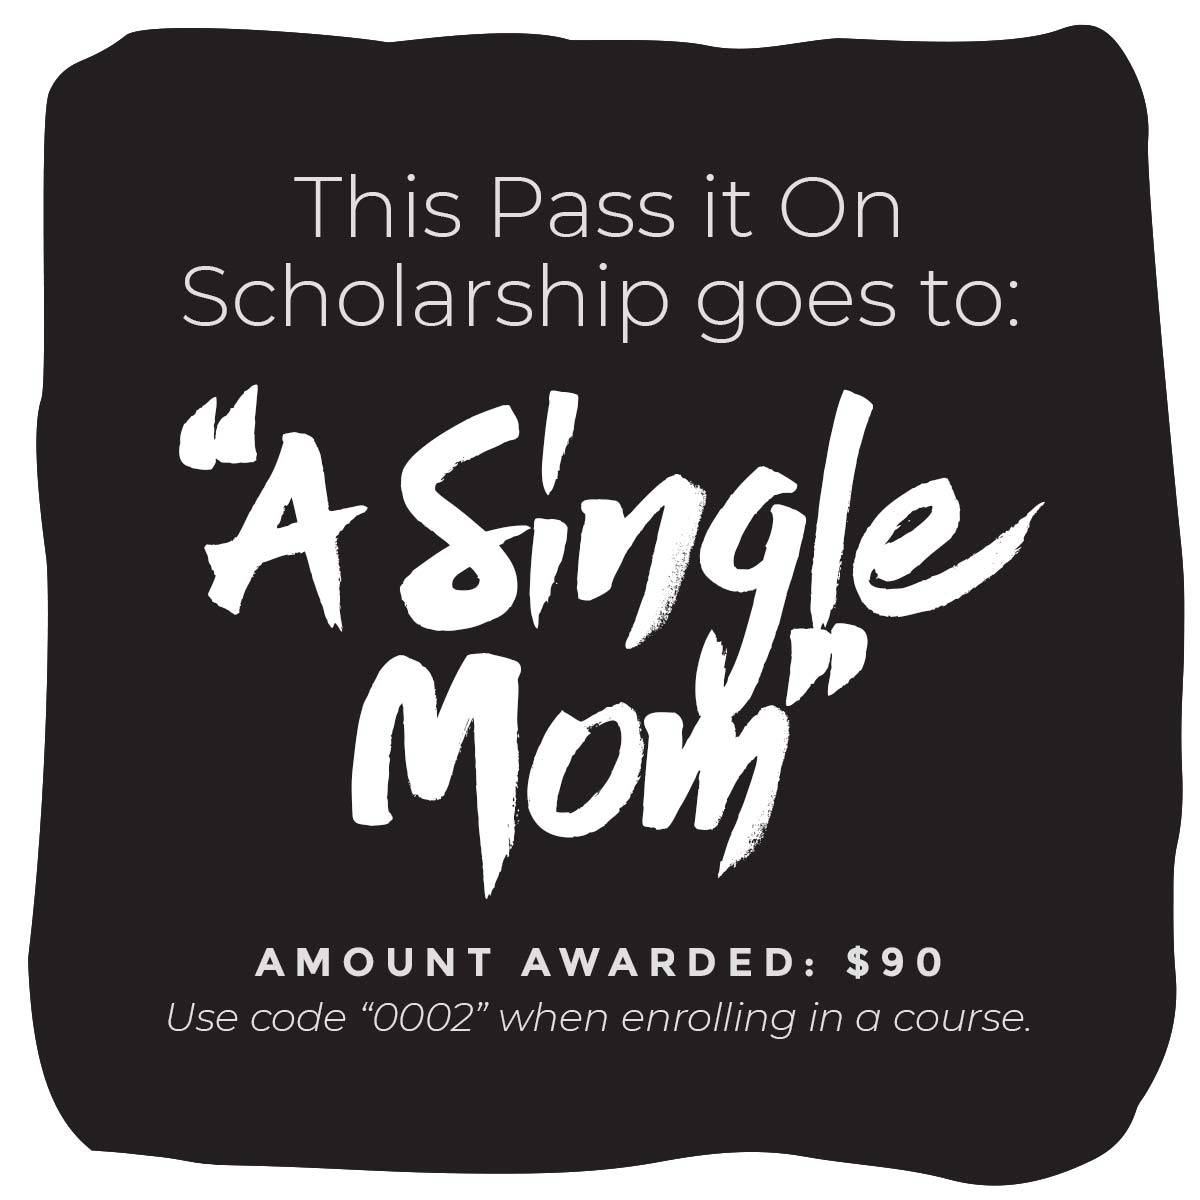 """This Pass It On Scholarship goes to: """"A Single Mom"""" Amount Awarded: $90 Use code """"0002"""" when enrolling in  course ."""